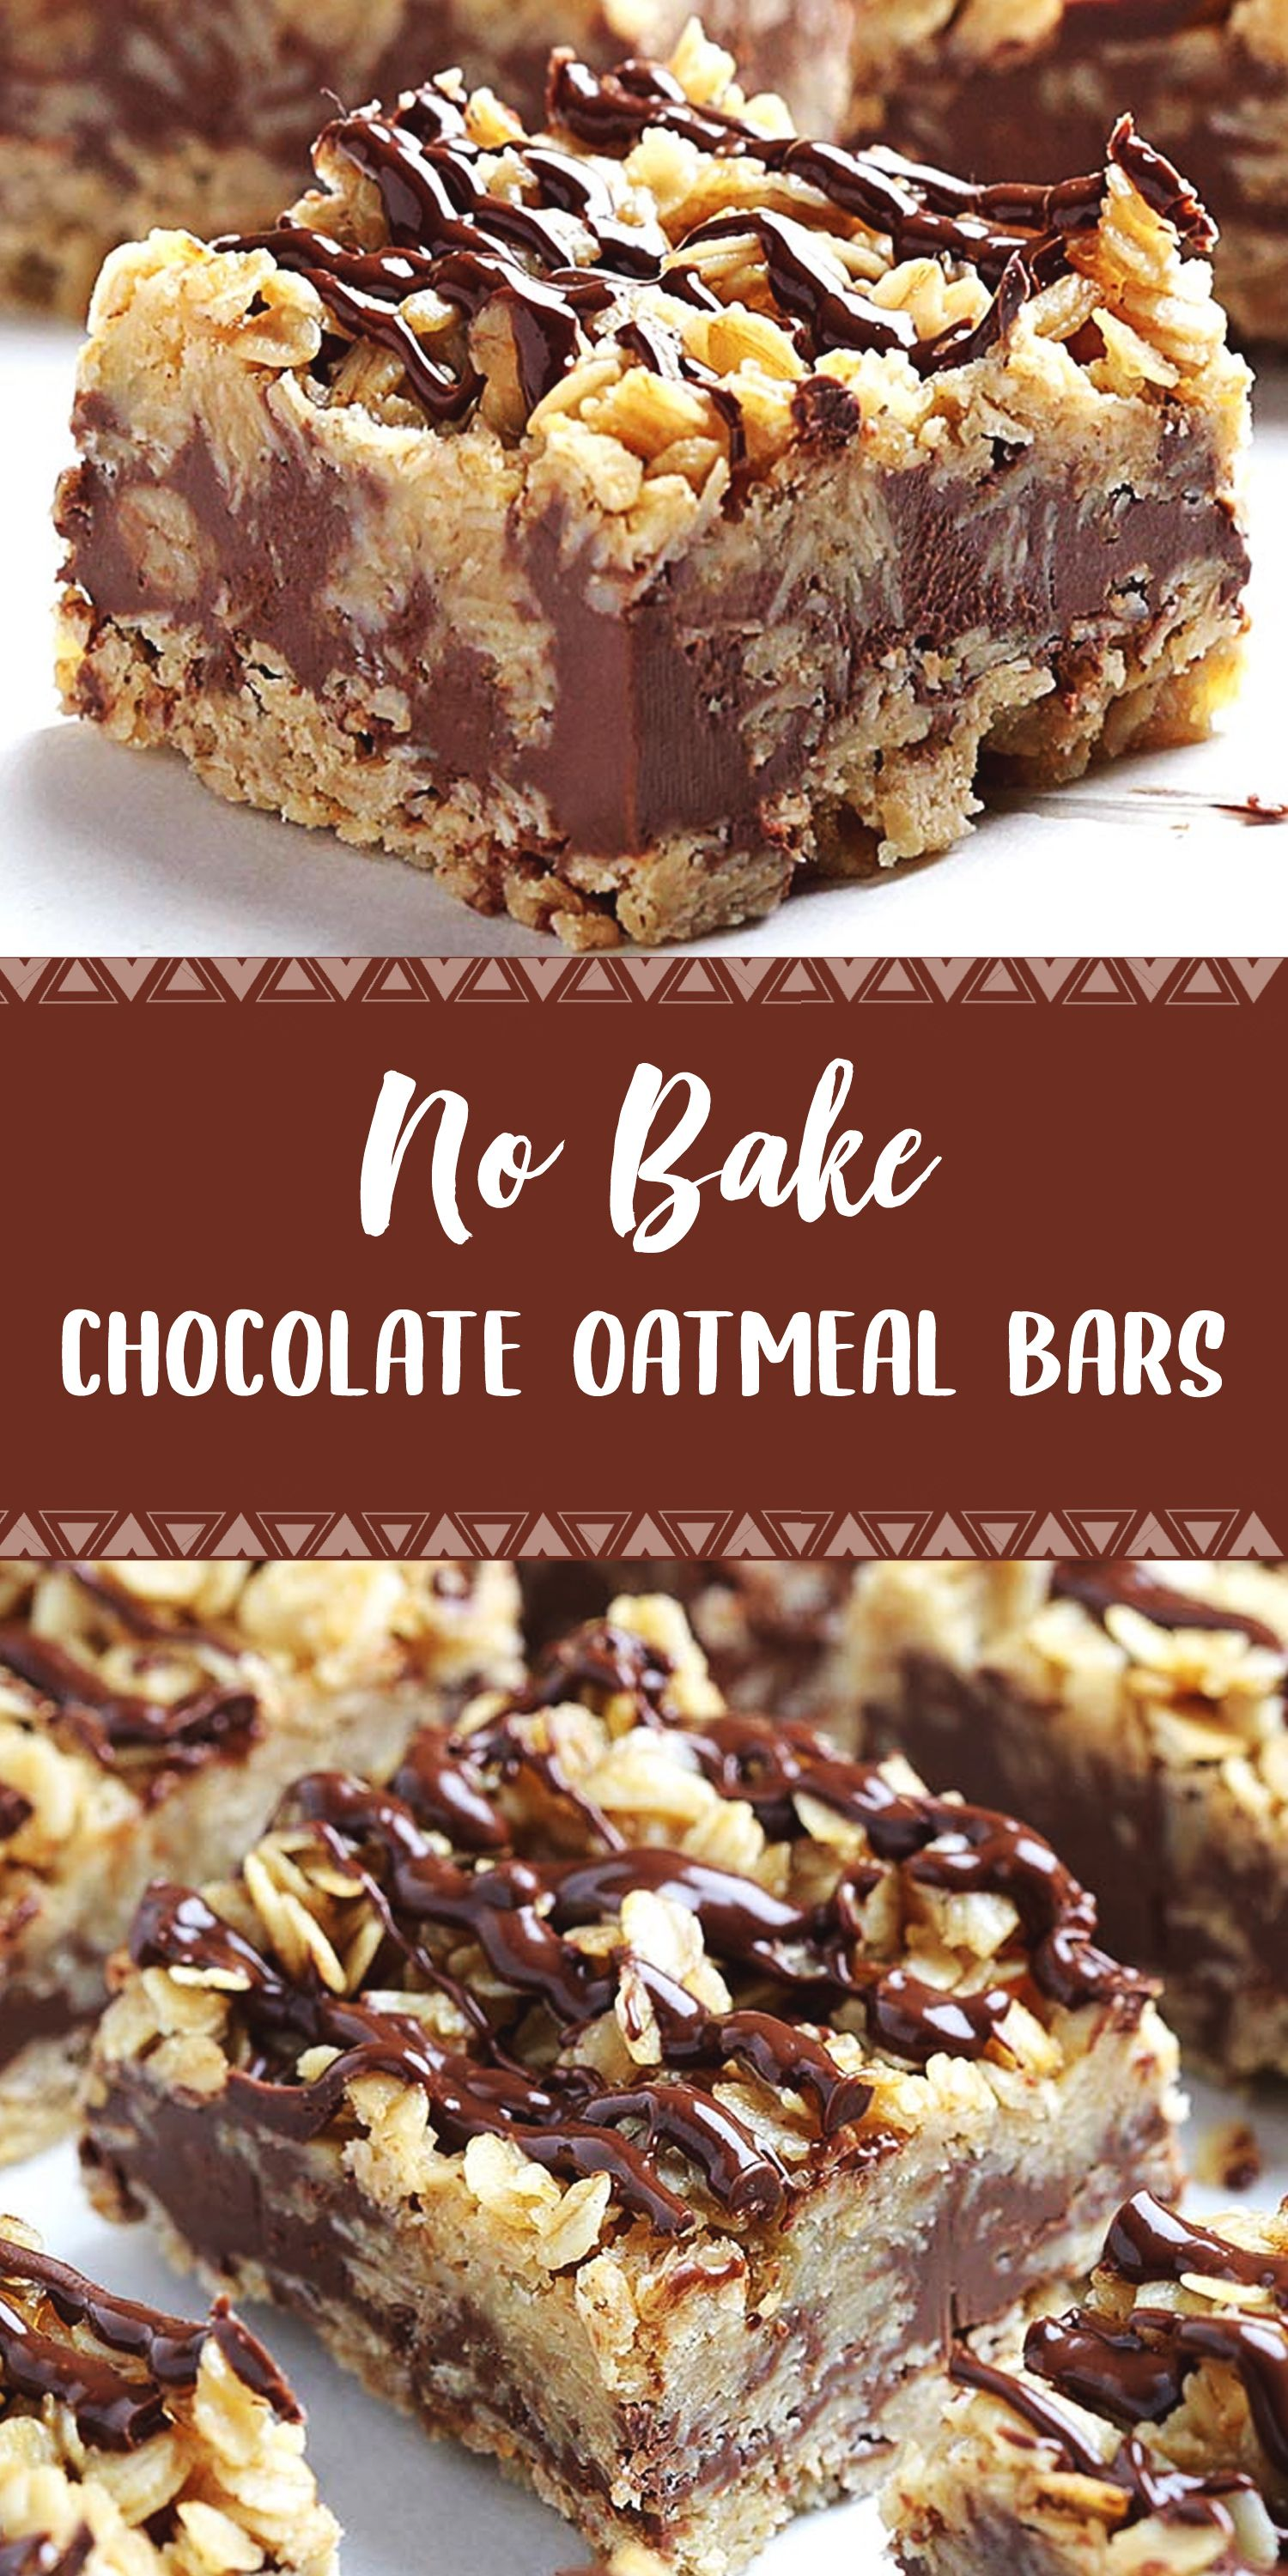 No Bake Chocolate Oatmeal Bars Chocolate Oatmeal Bars Chocolate